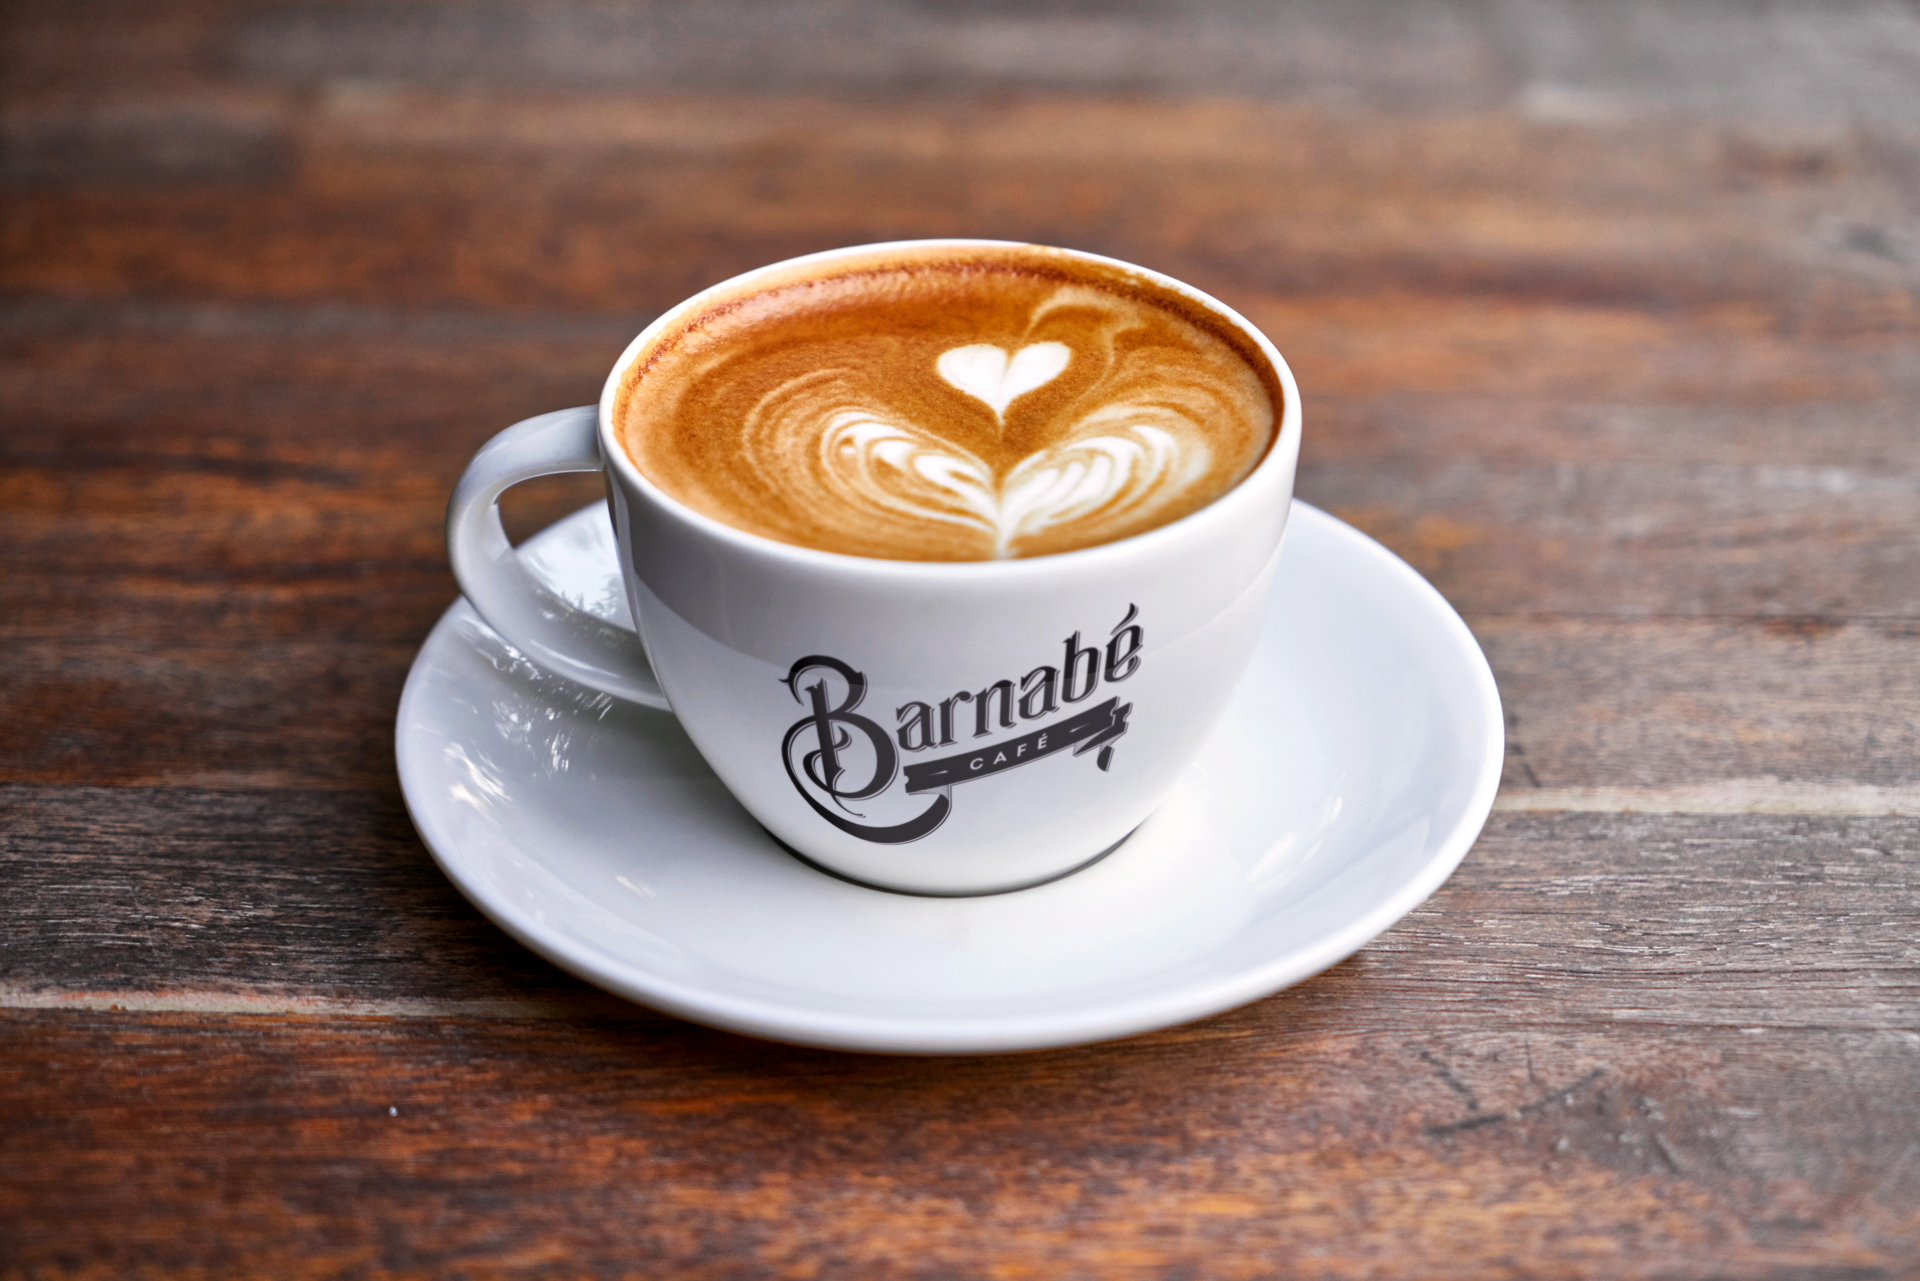 barnabe-cafe-capuccino-cup